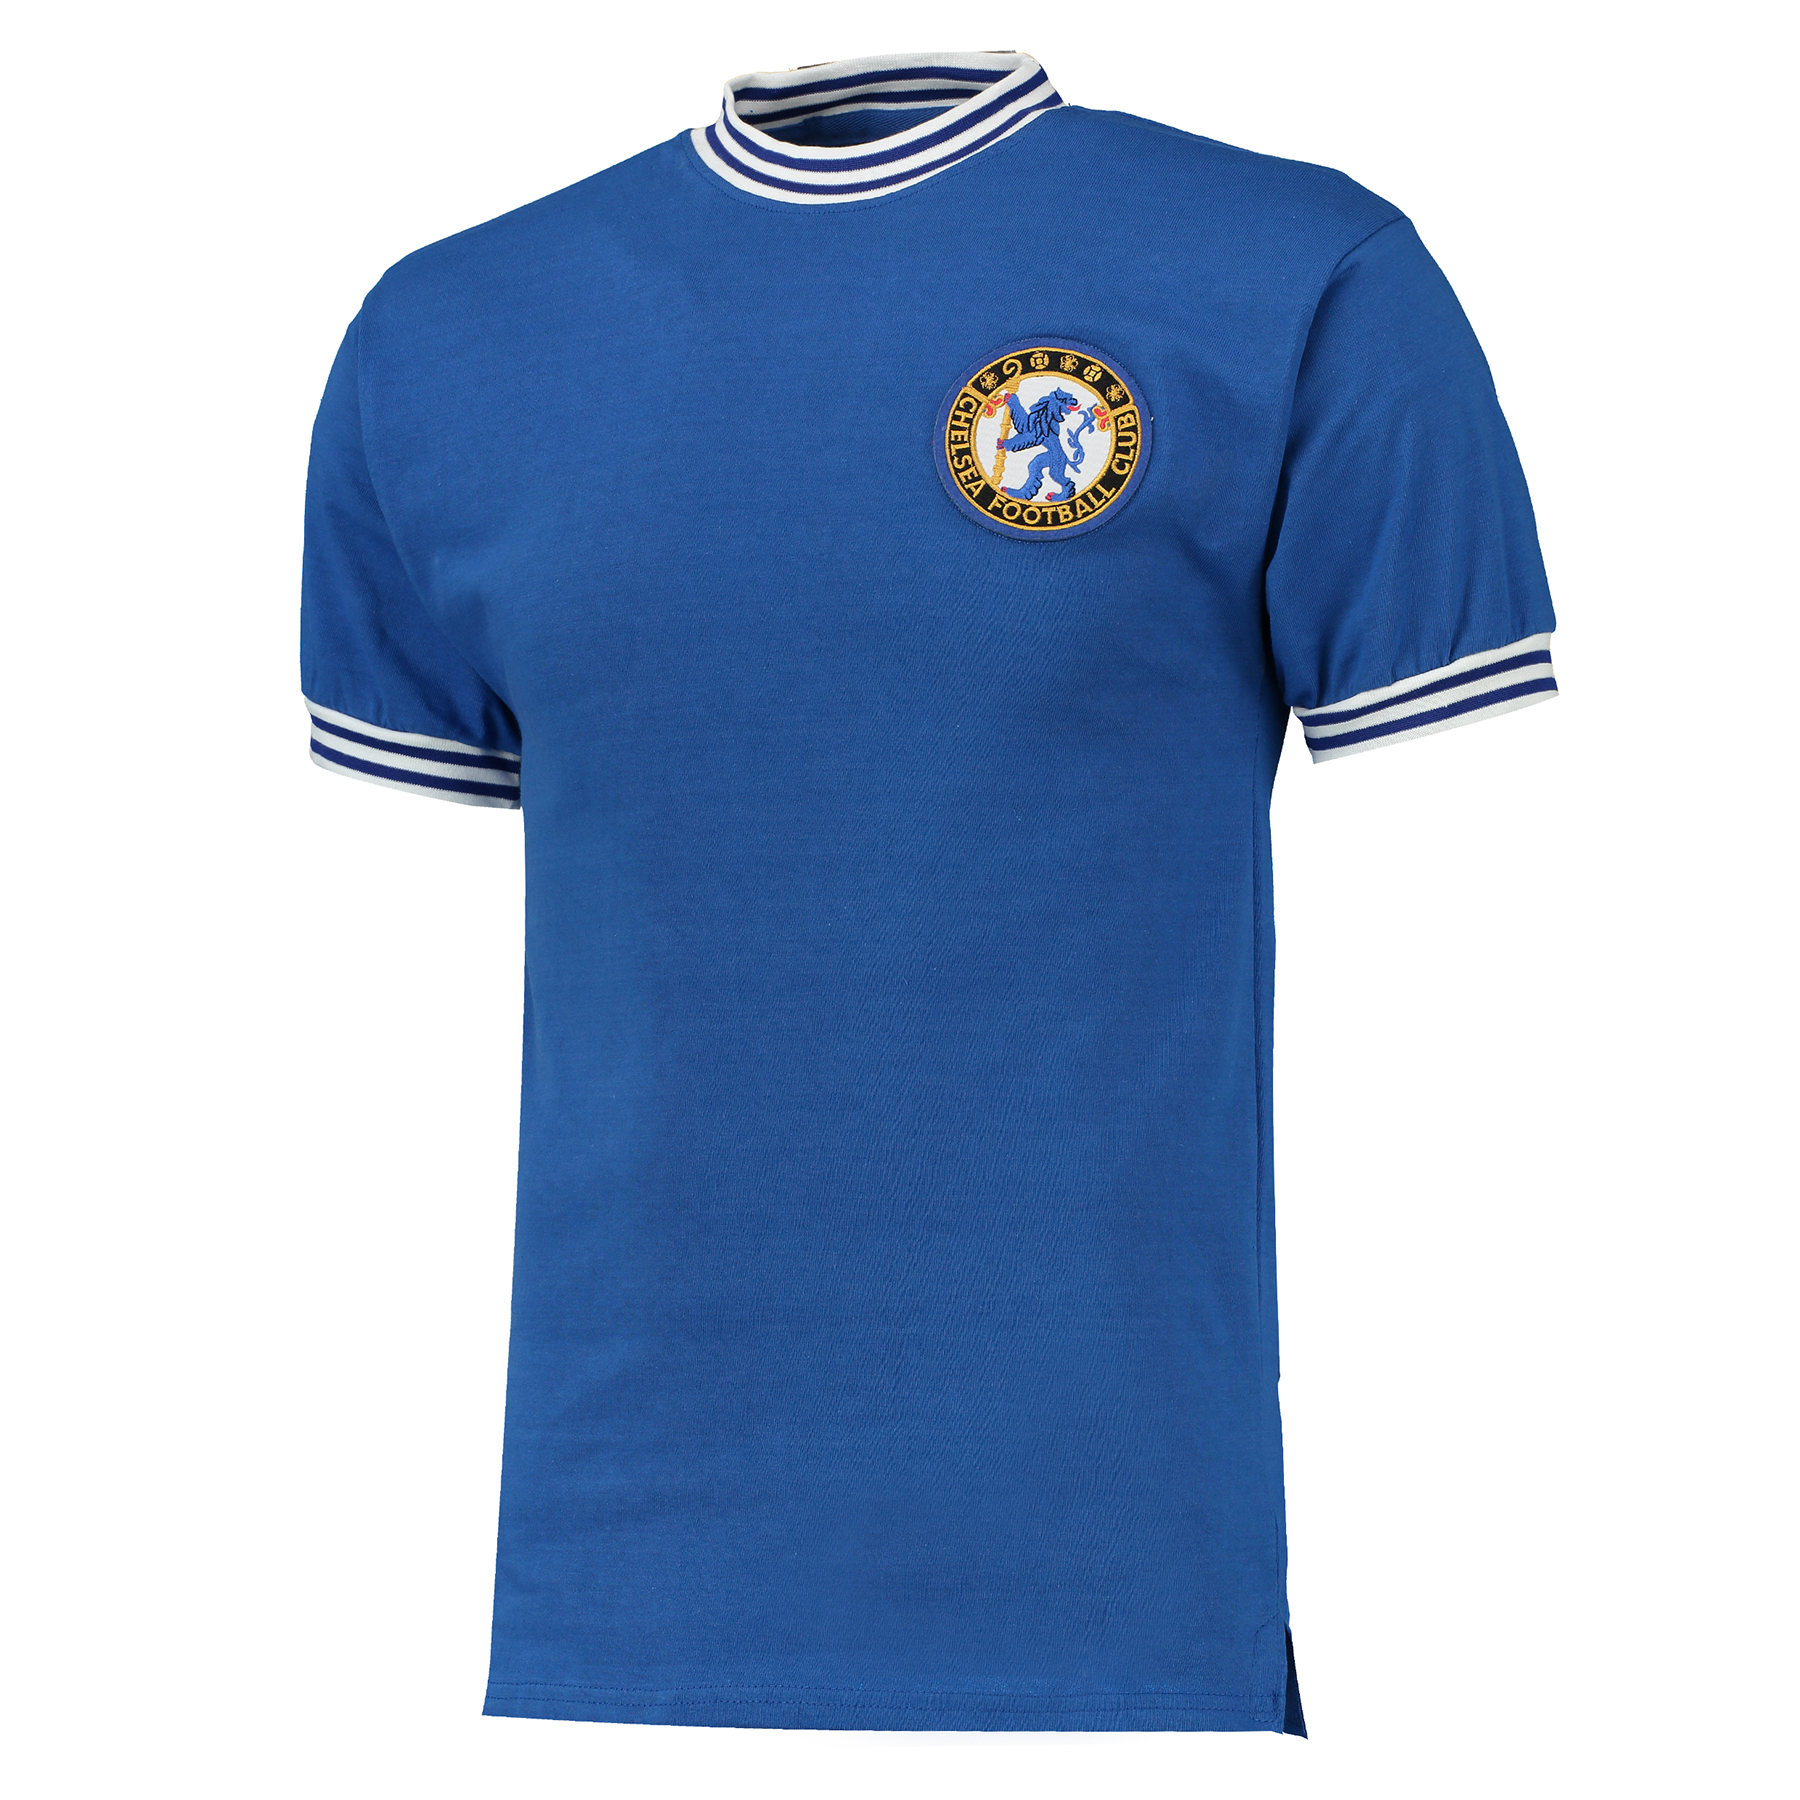 Chelsea 1963 Home Shirt - Royal